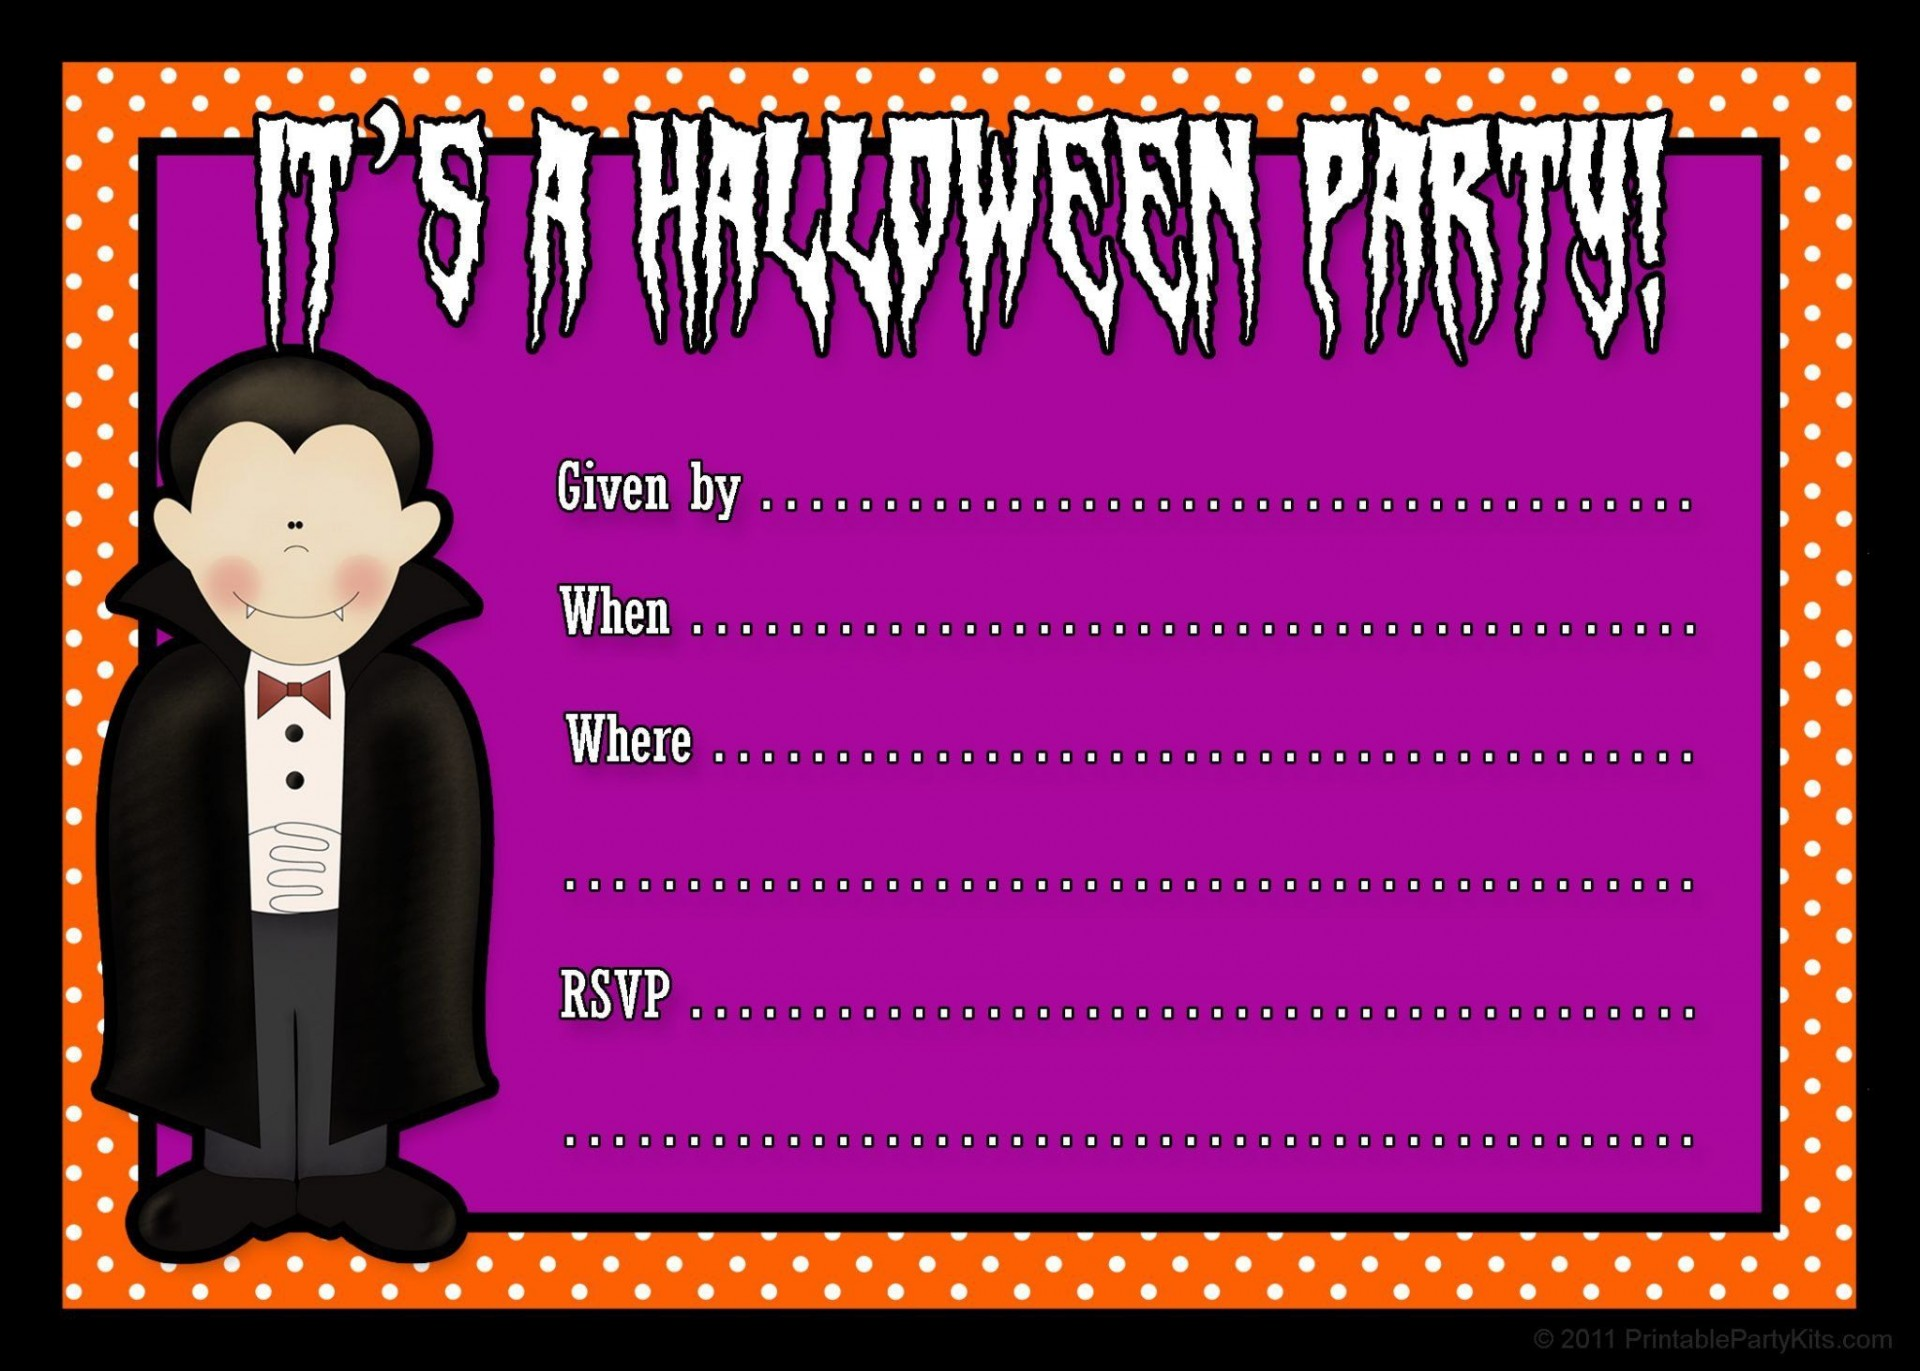 001 Fascinating Free Halloween Party Invitation Template Highest Quality  Printable Birthday For Word Download1920